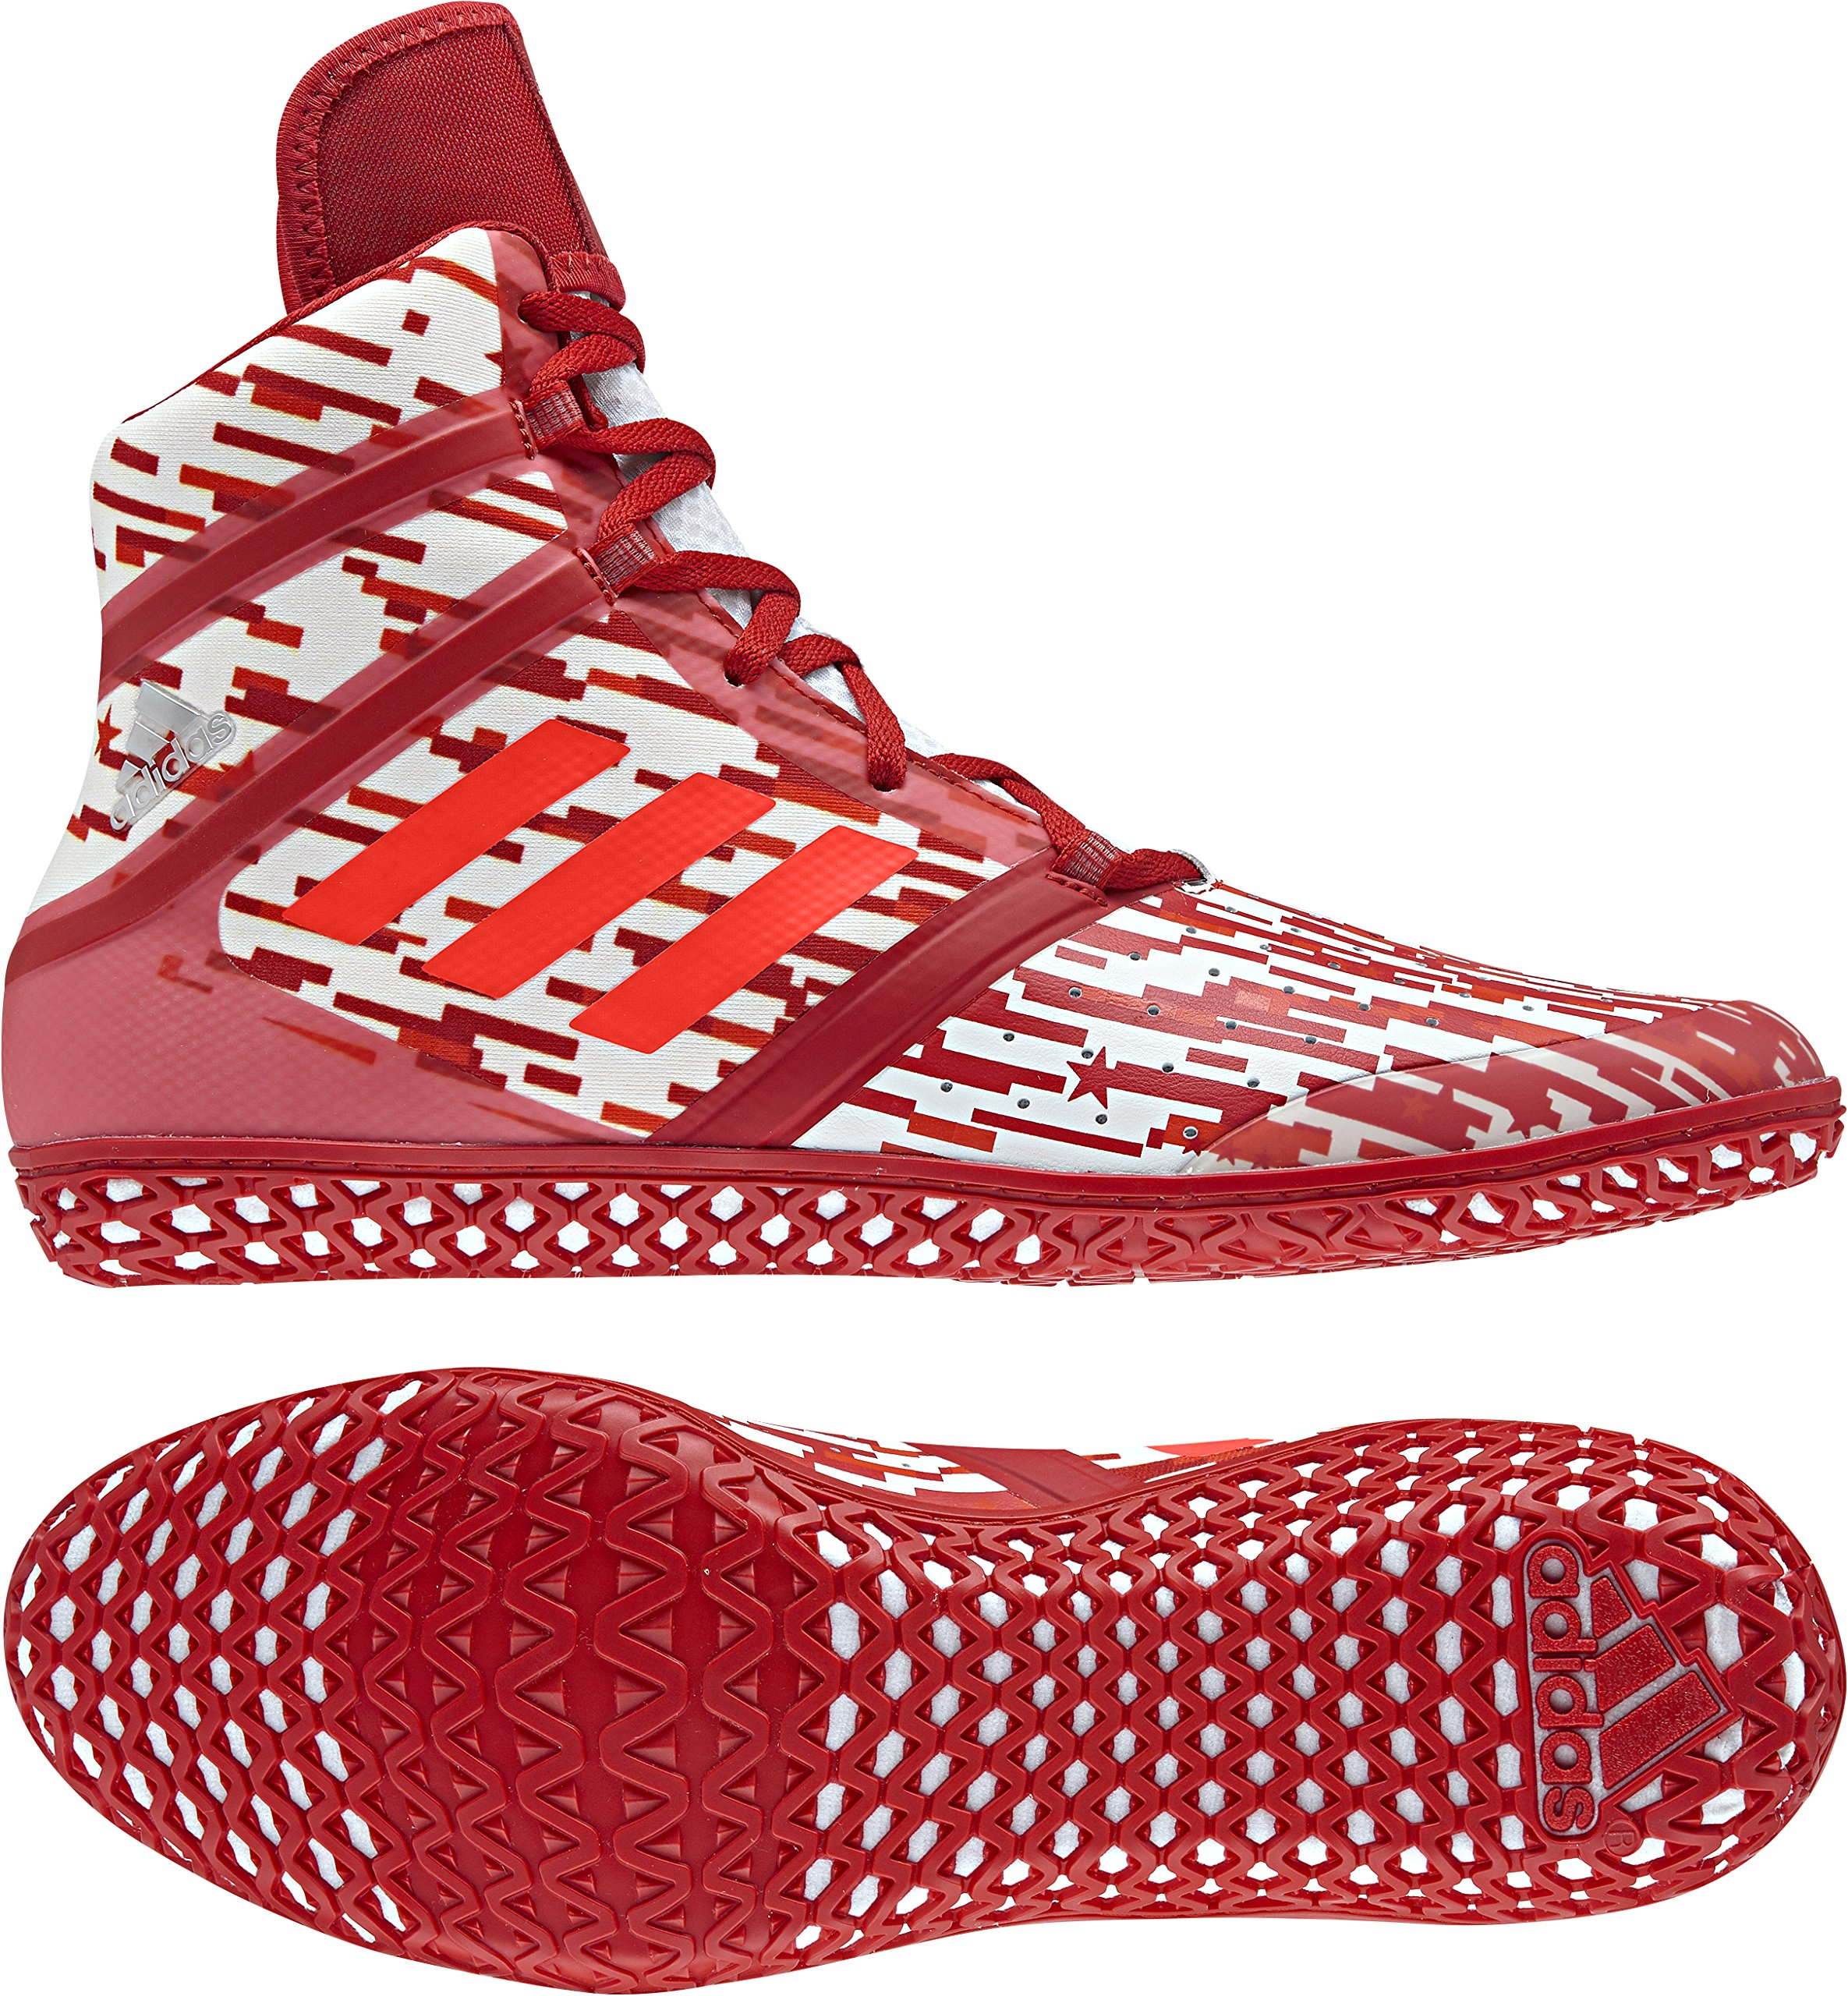 newest 4051d 55a68 Galleon - Adidas Impact Men s Wrestling Shoes, Red Digital Print, Size 6